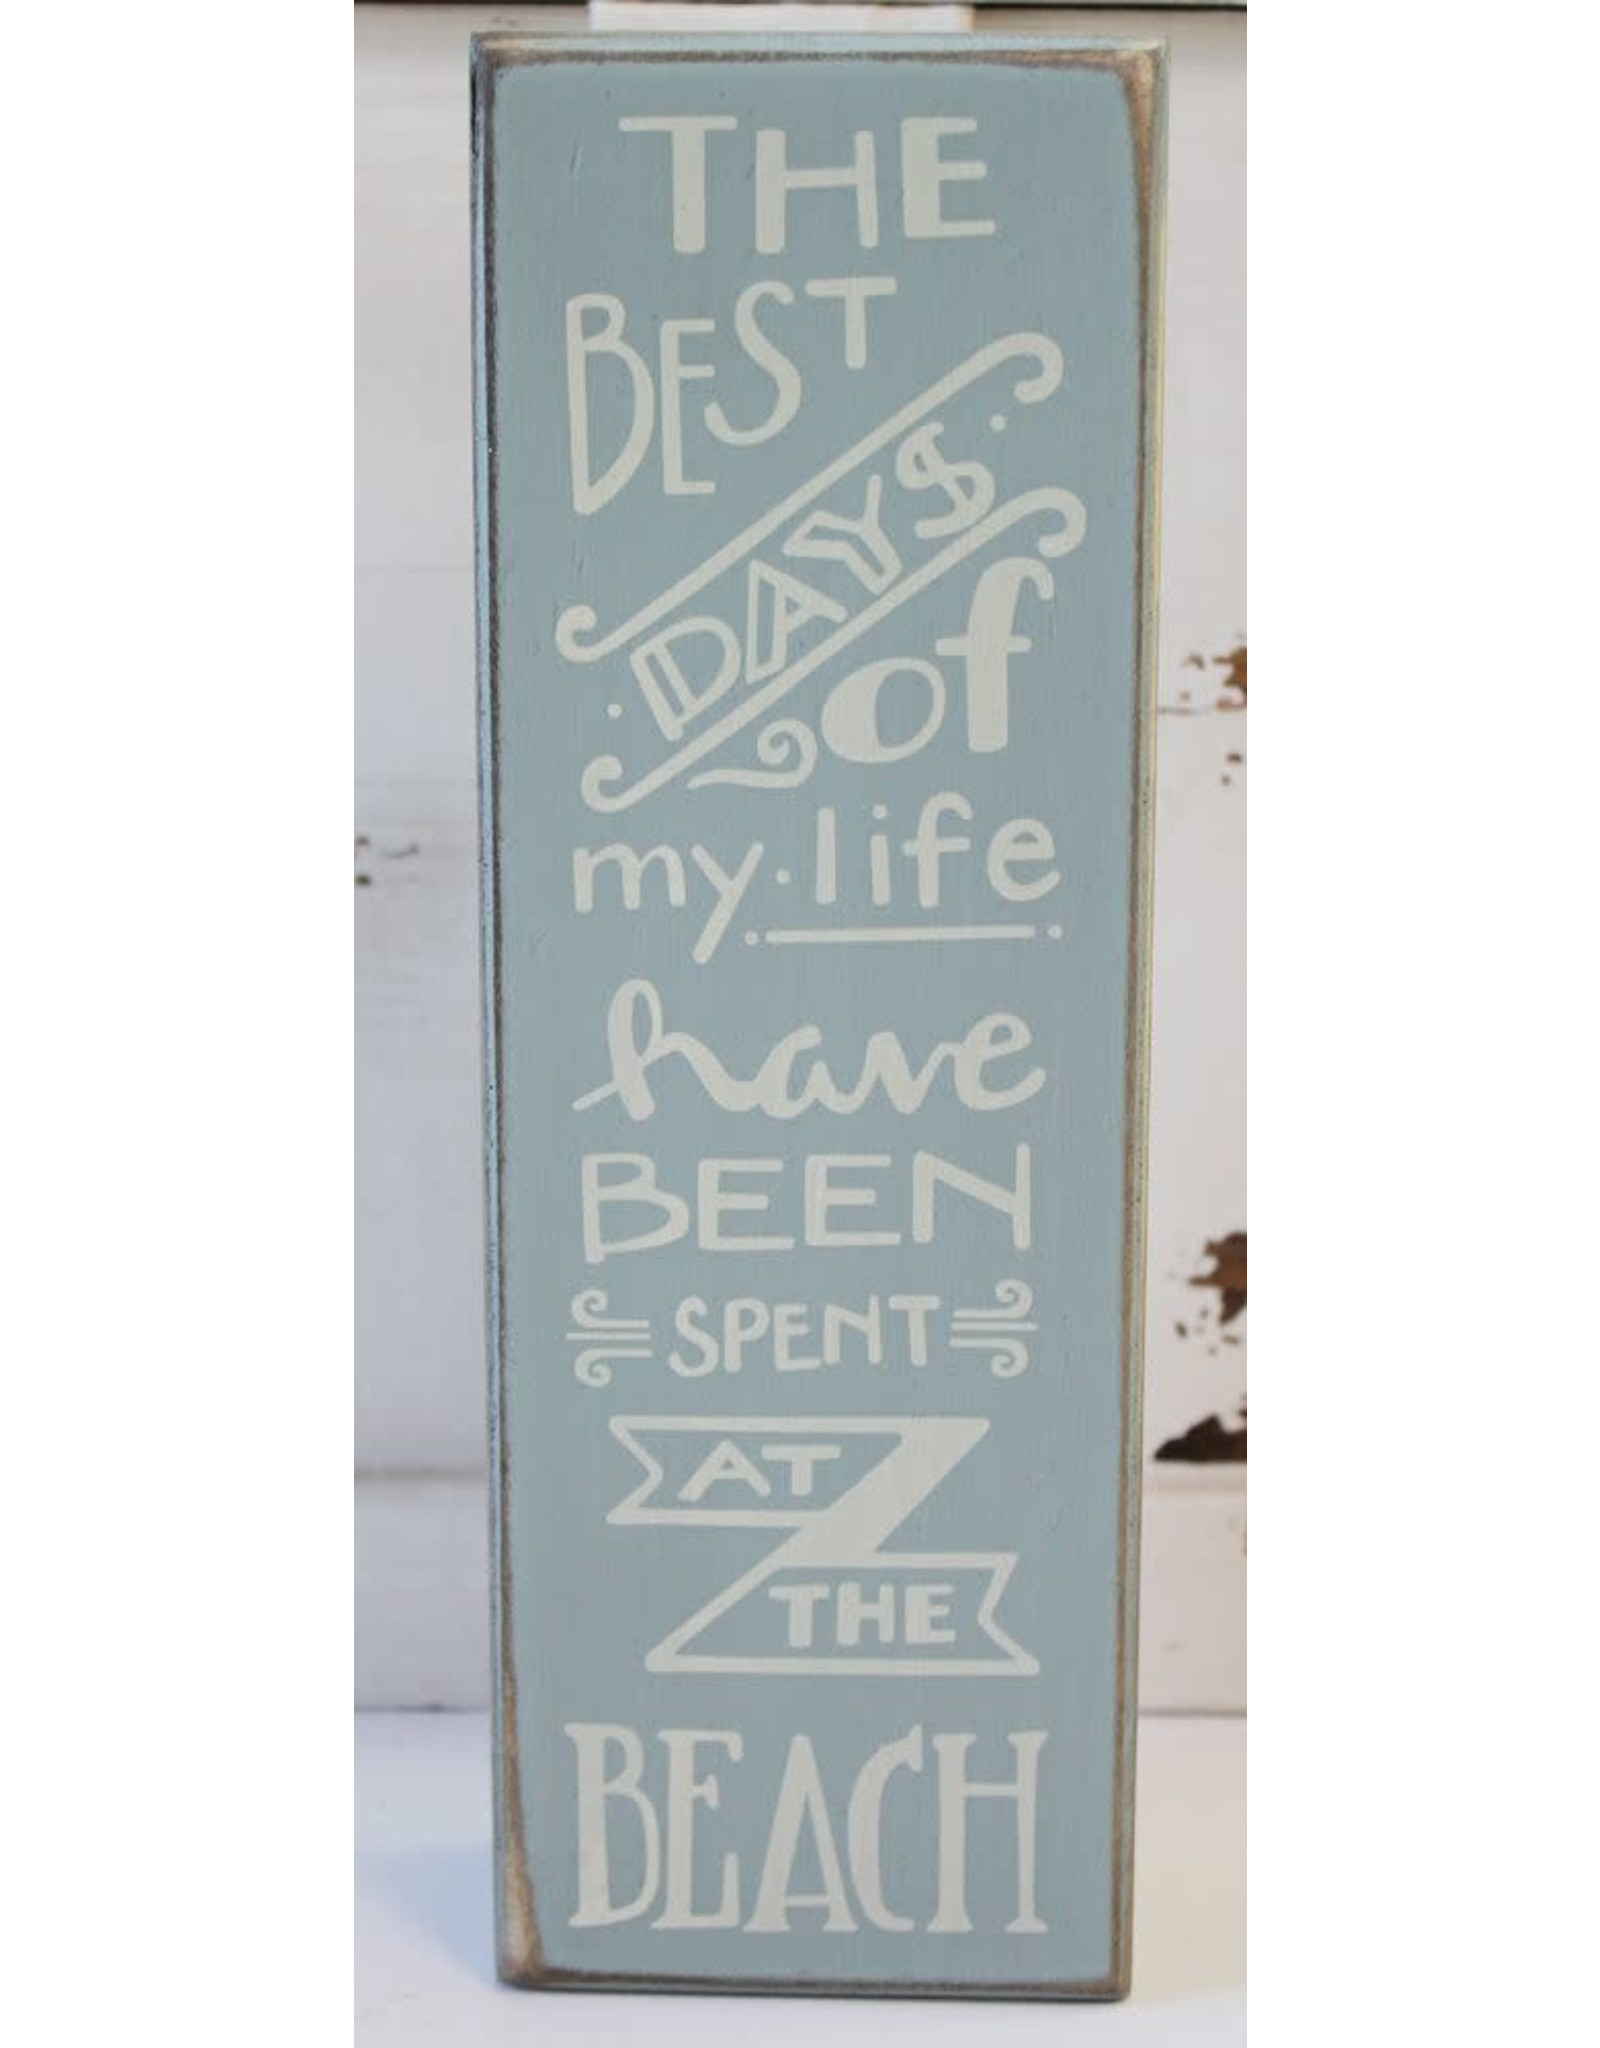 PRIMITIVES BY KATHY BEACH LOVER BLOCK SIGNS BEST DAYS OF MY LIFE AT THE BEACH